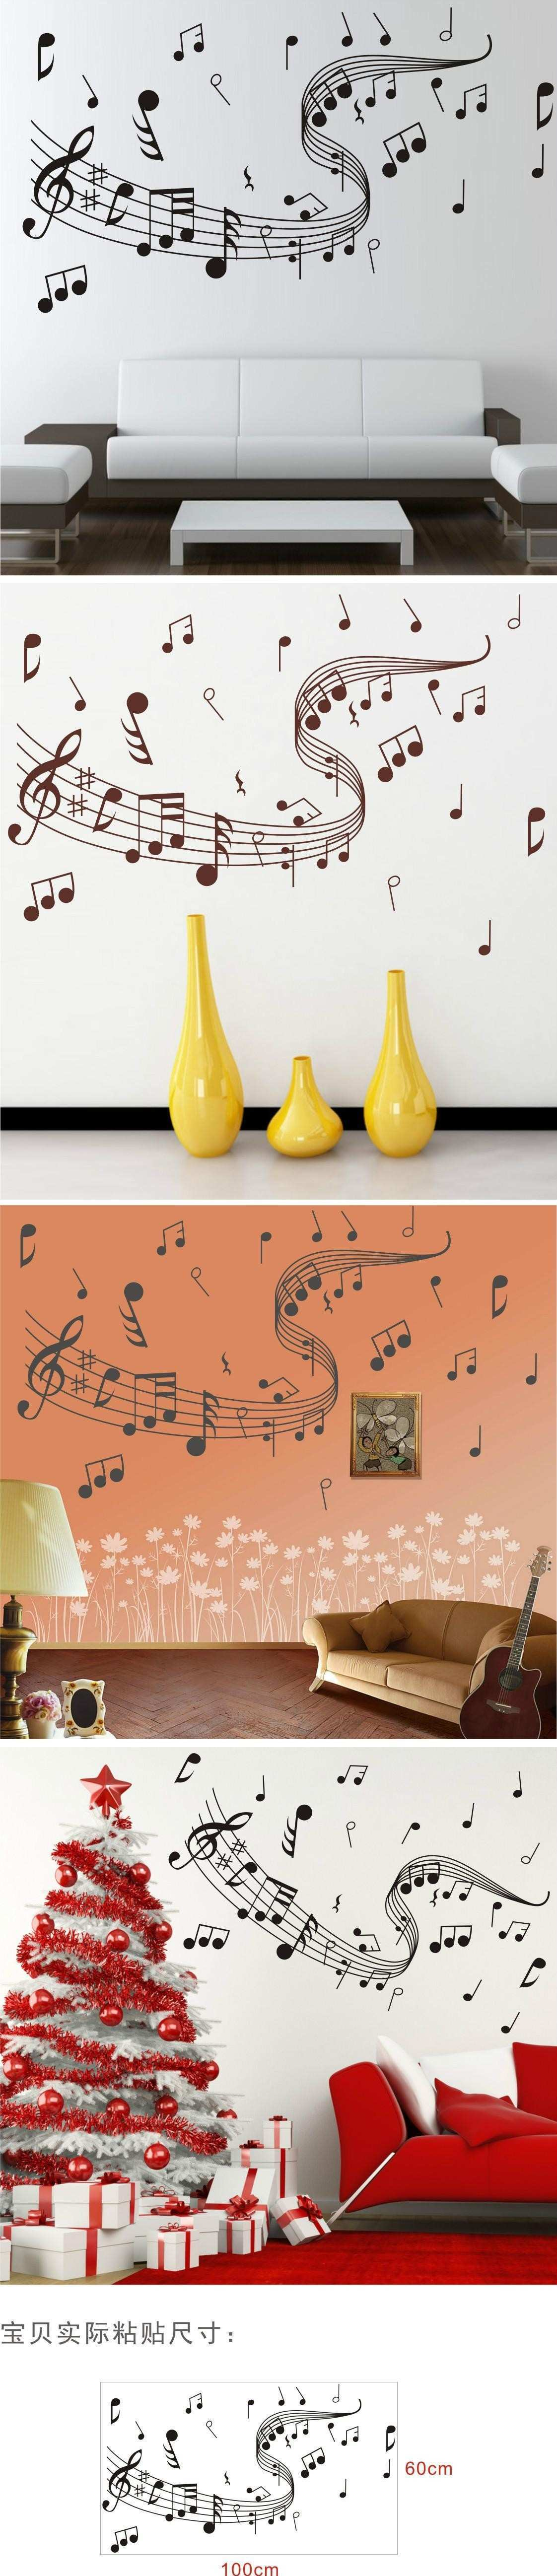 48 Inspirational Wall Hangings for Living Room Gallery